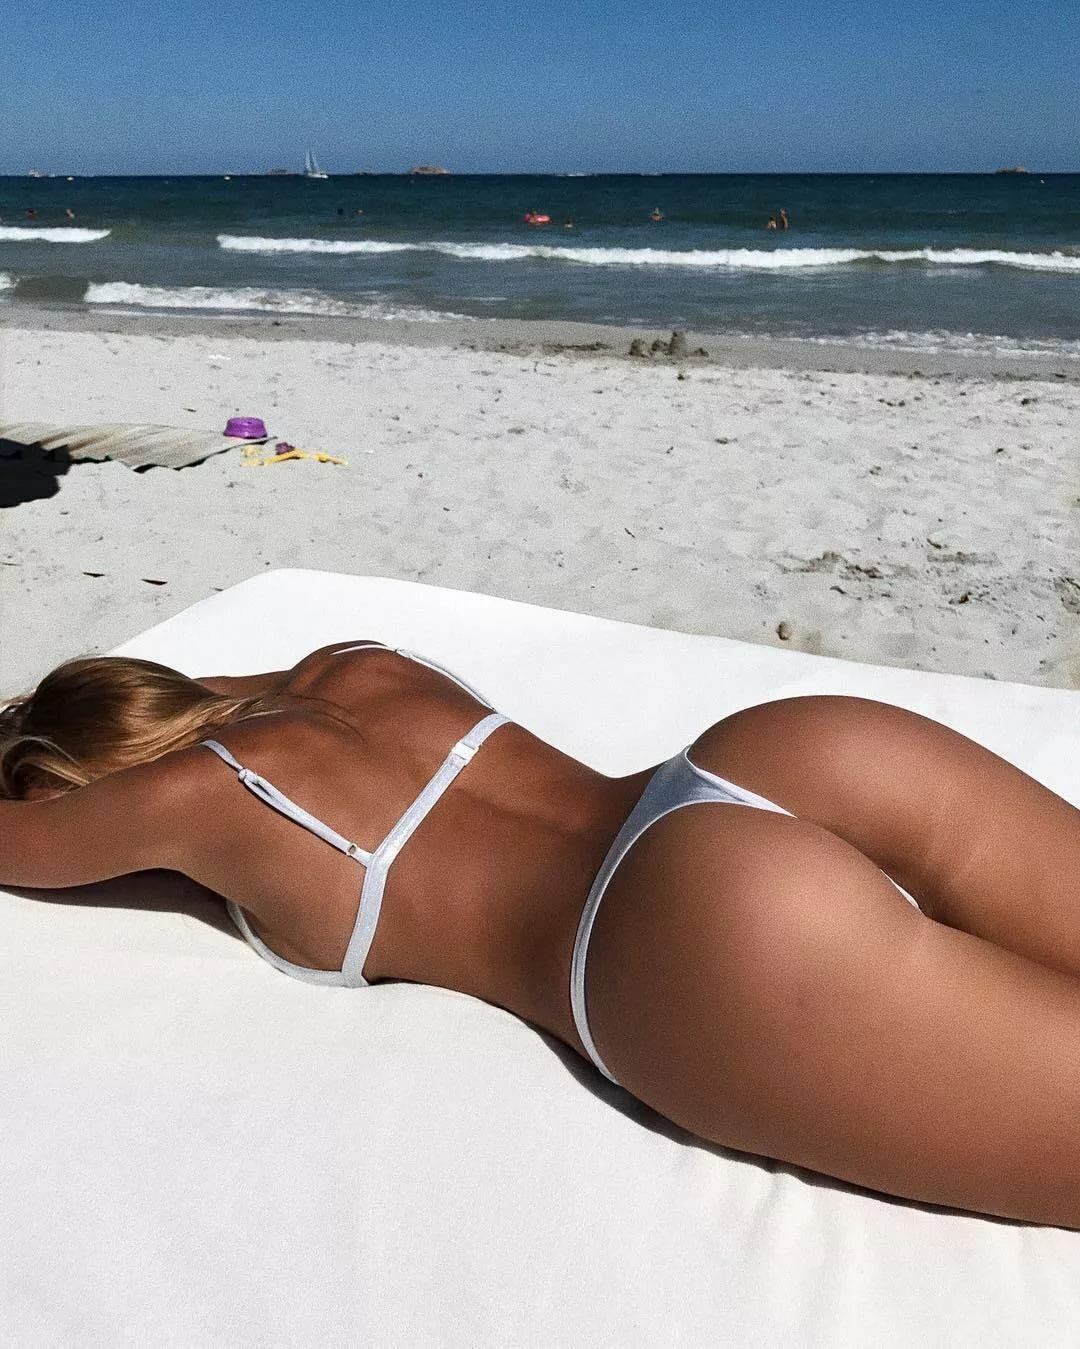 girls-laying-out-bikinis